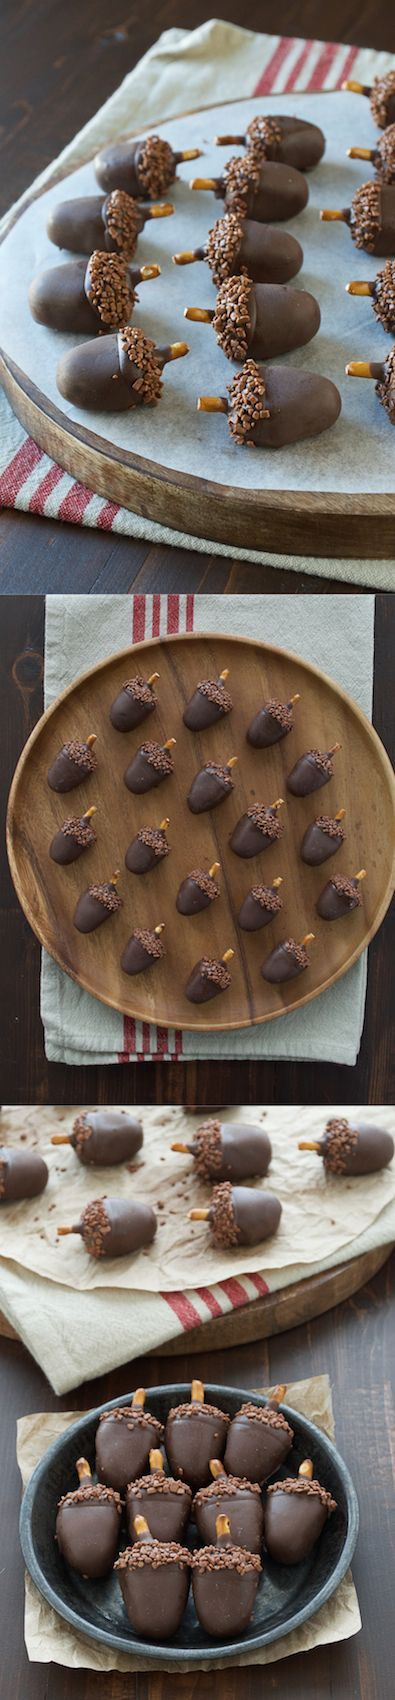 These are SO adorable! Peanut butter oreo balls made to look like acorns!! #dessert #recipes #delicious #healthy #recipe